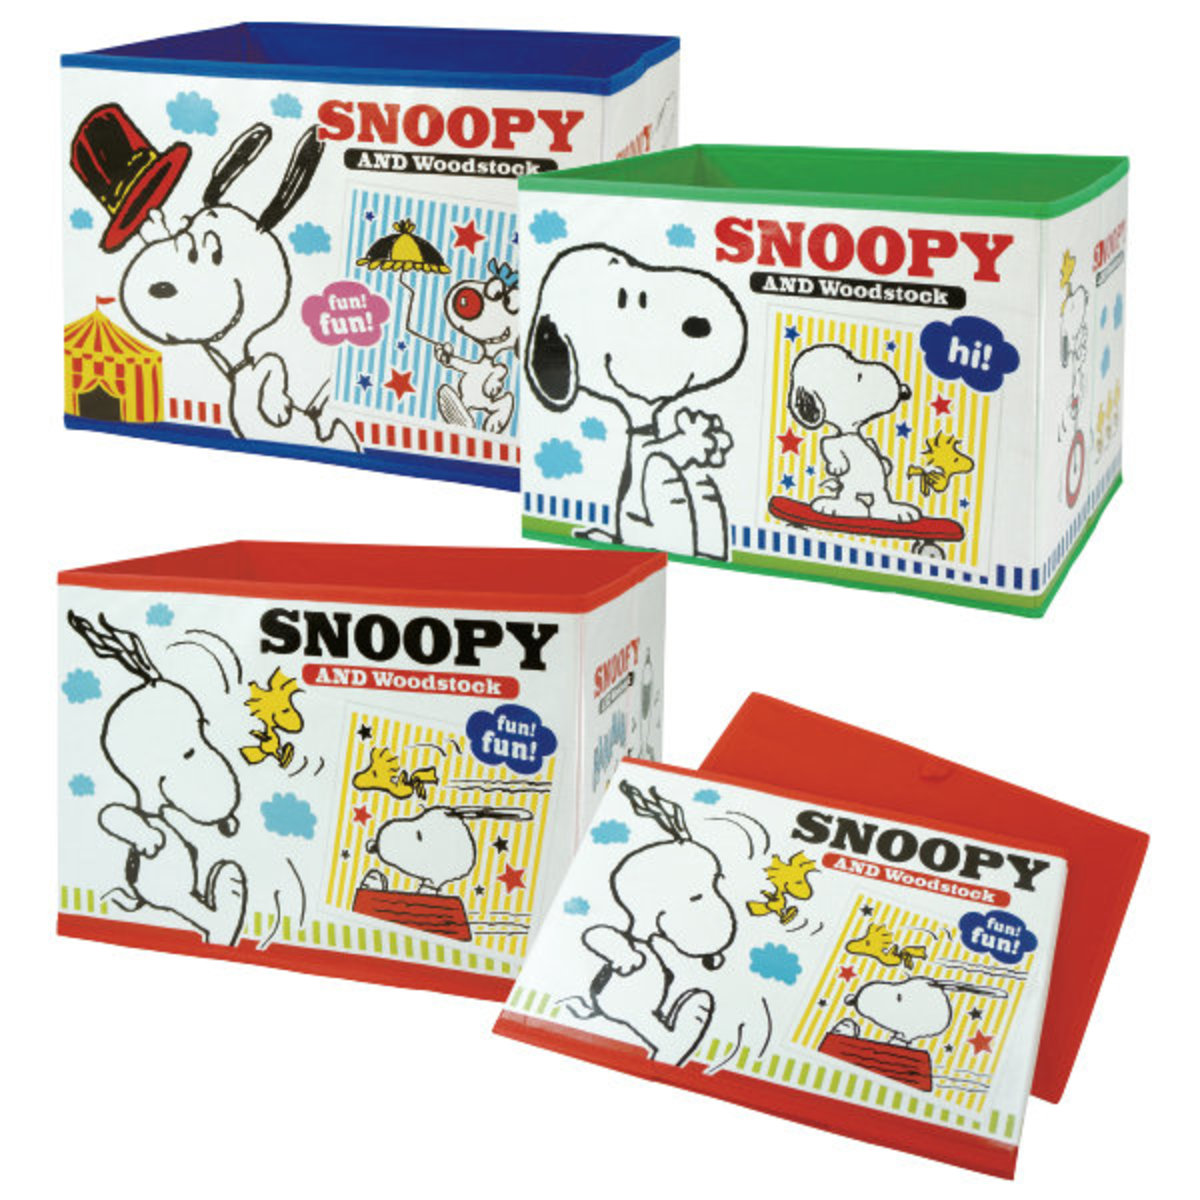 (1 set of 3 pcs) (Snoopy) Japan Collapsible Storage Boxes x 1 Set